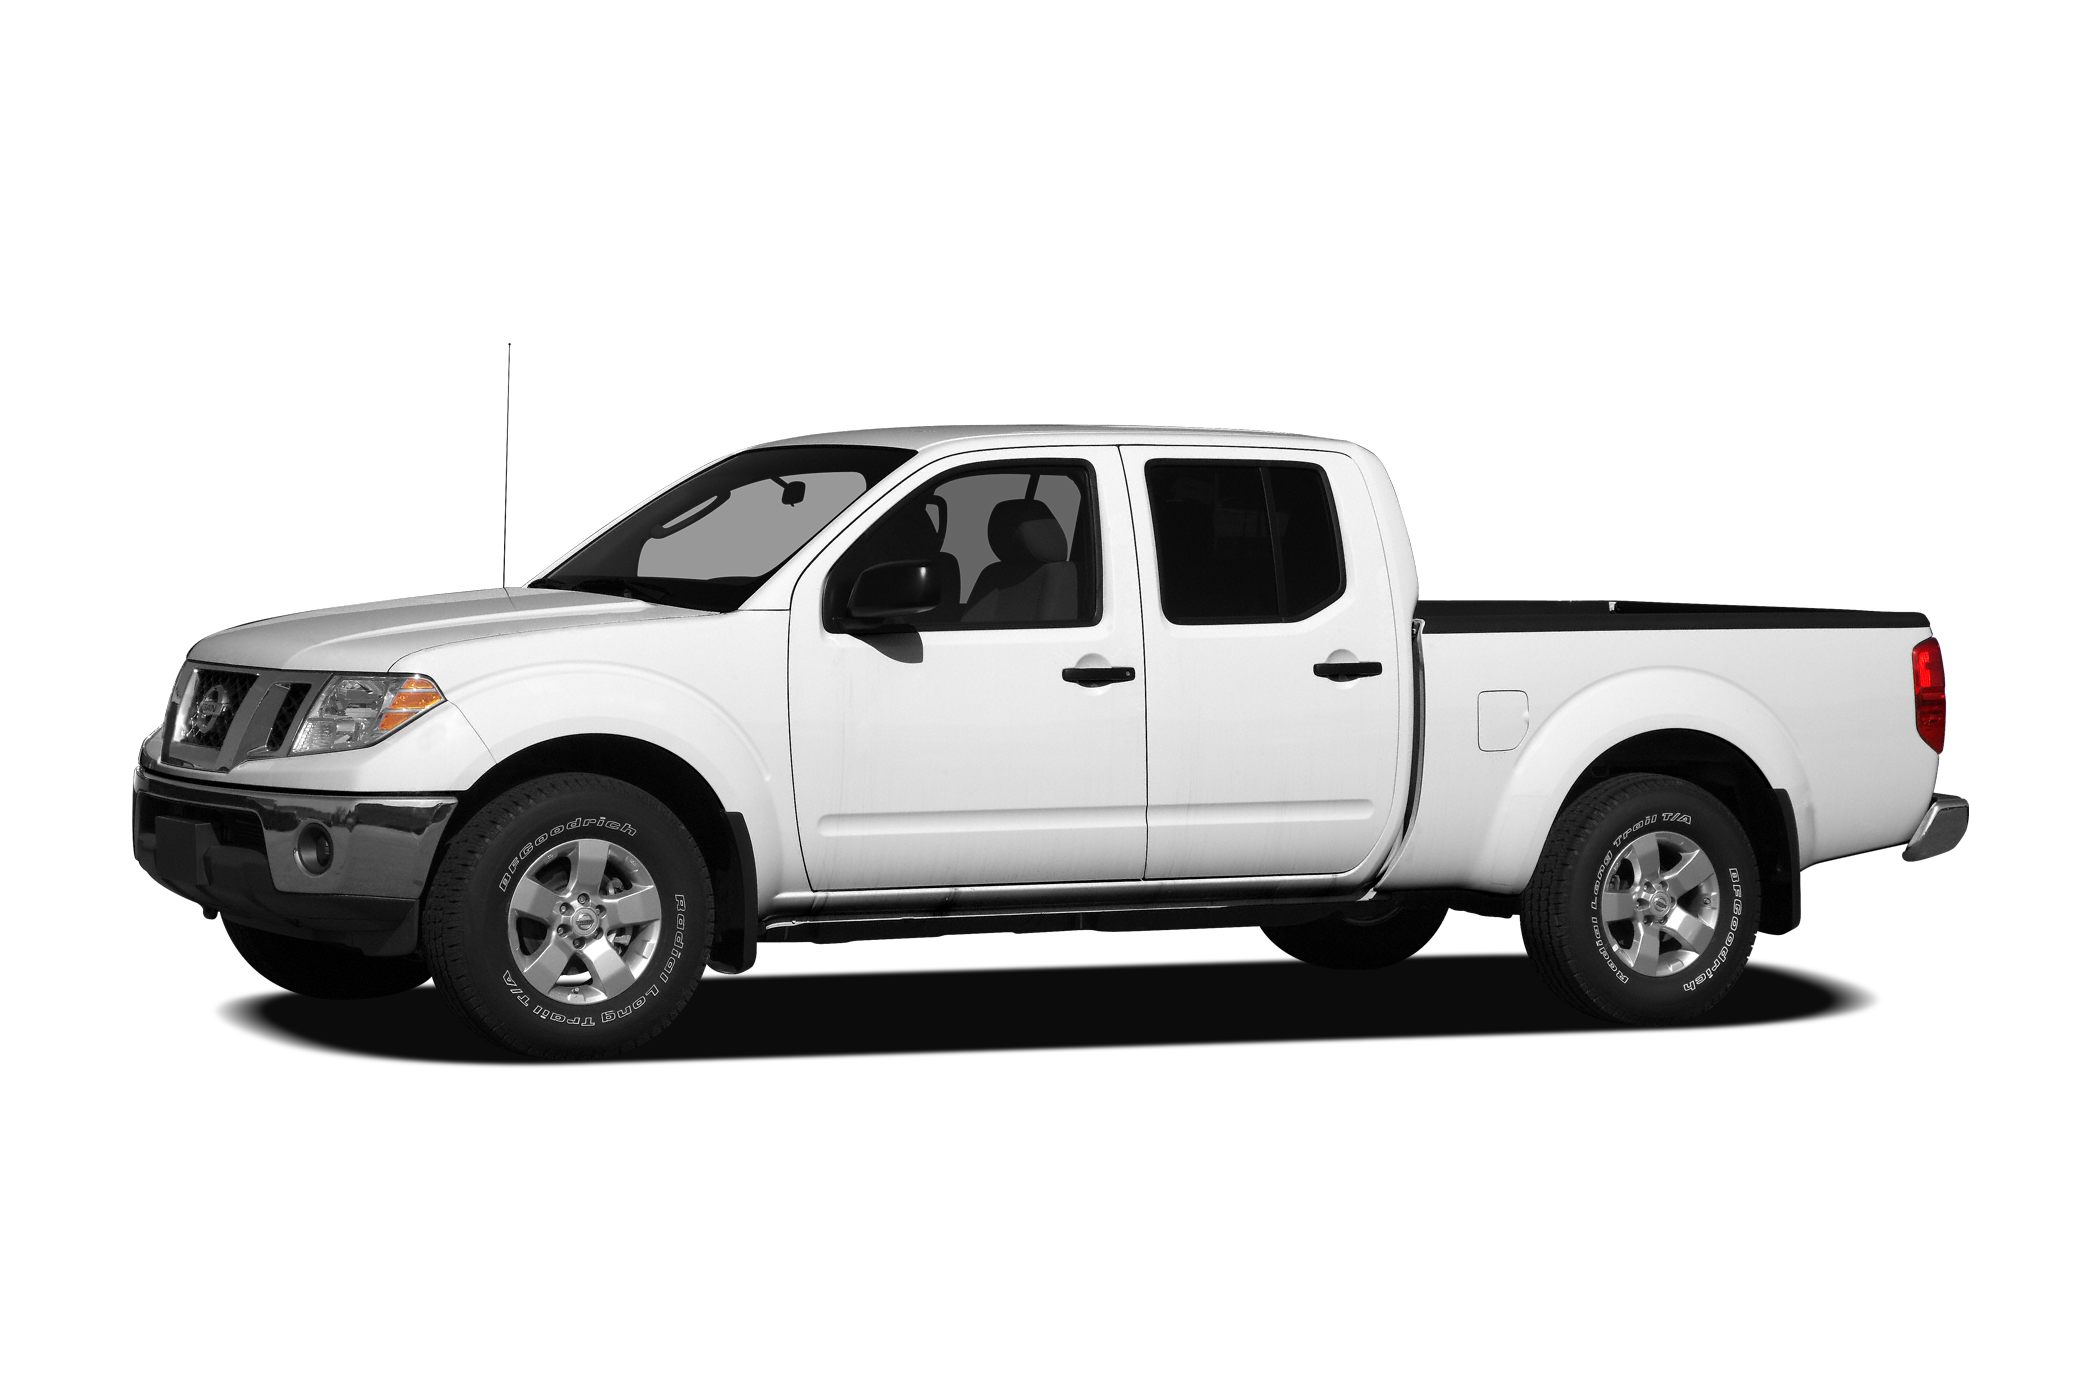 2011 Nissan Frontier SV Proudly serving manatee county for over 60 years offering Cars Trucks SU